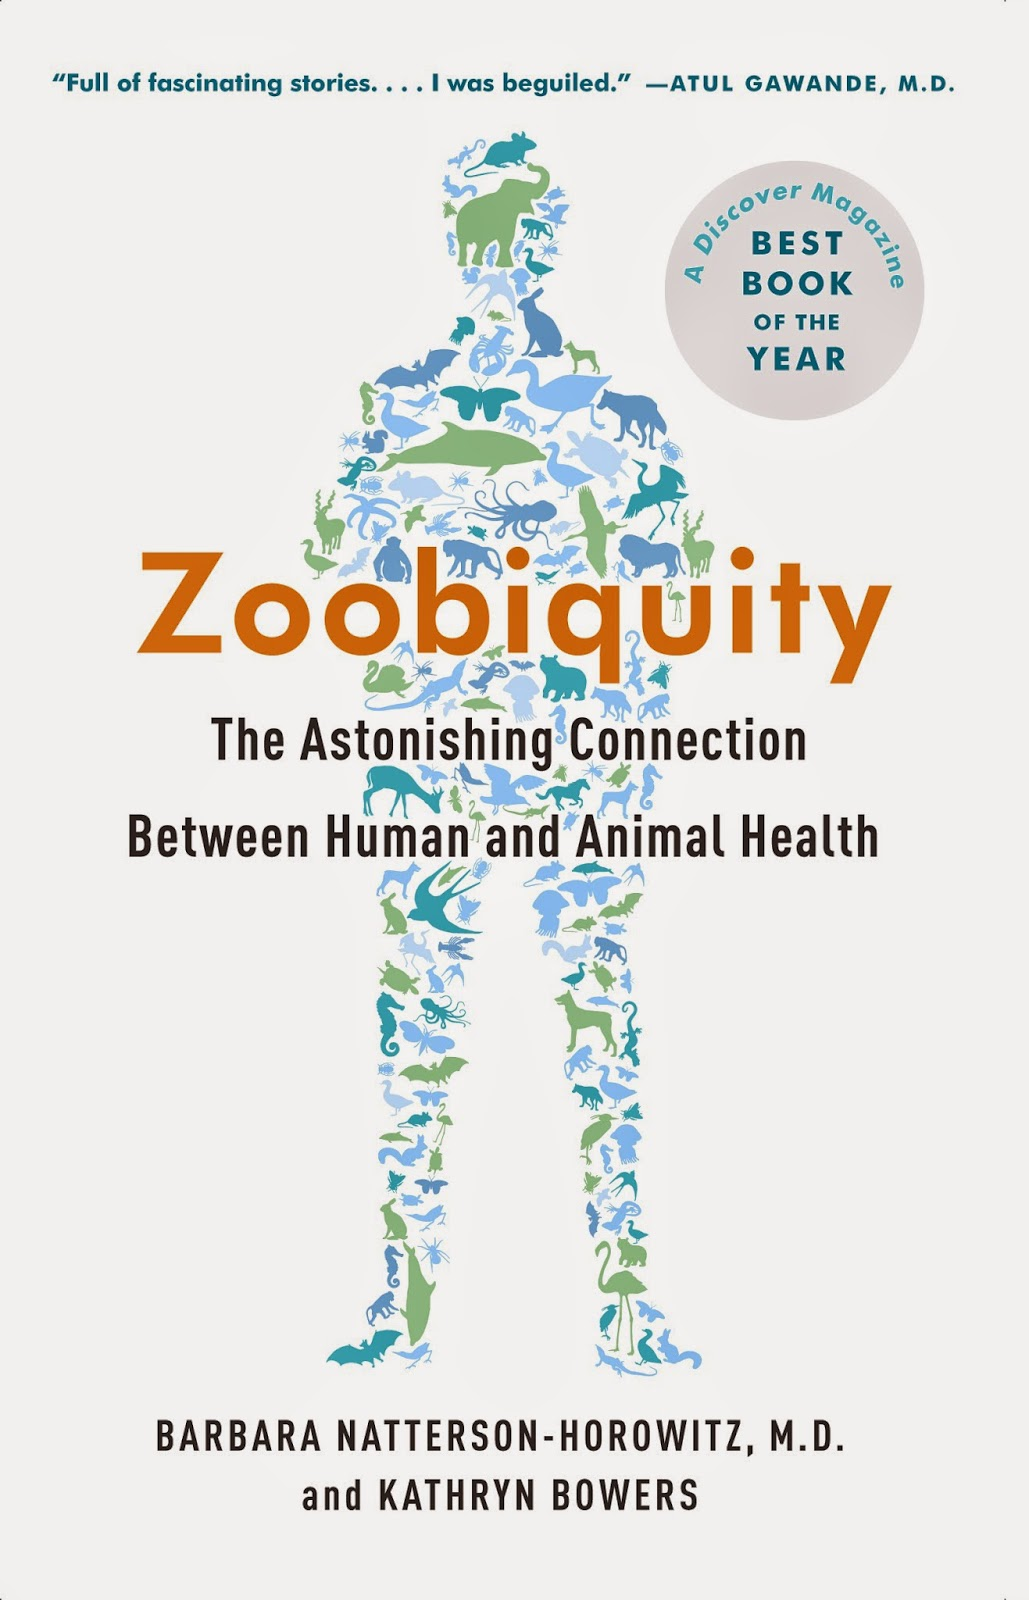 Zoobiquity shows the connection between animal and human health